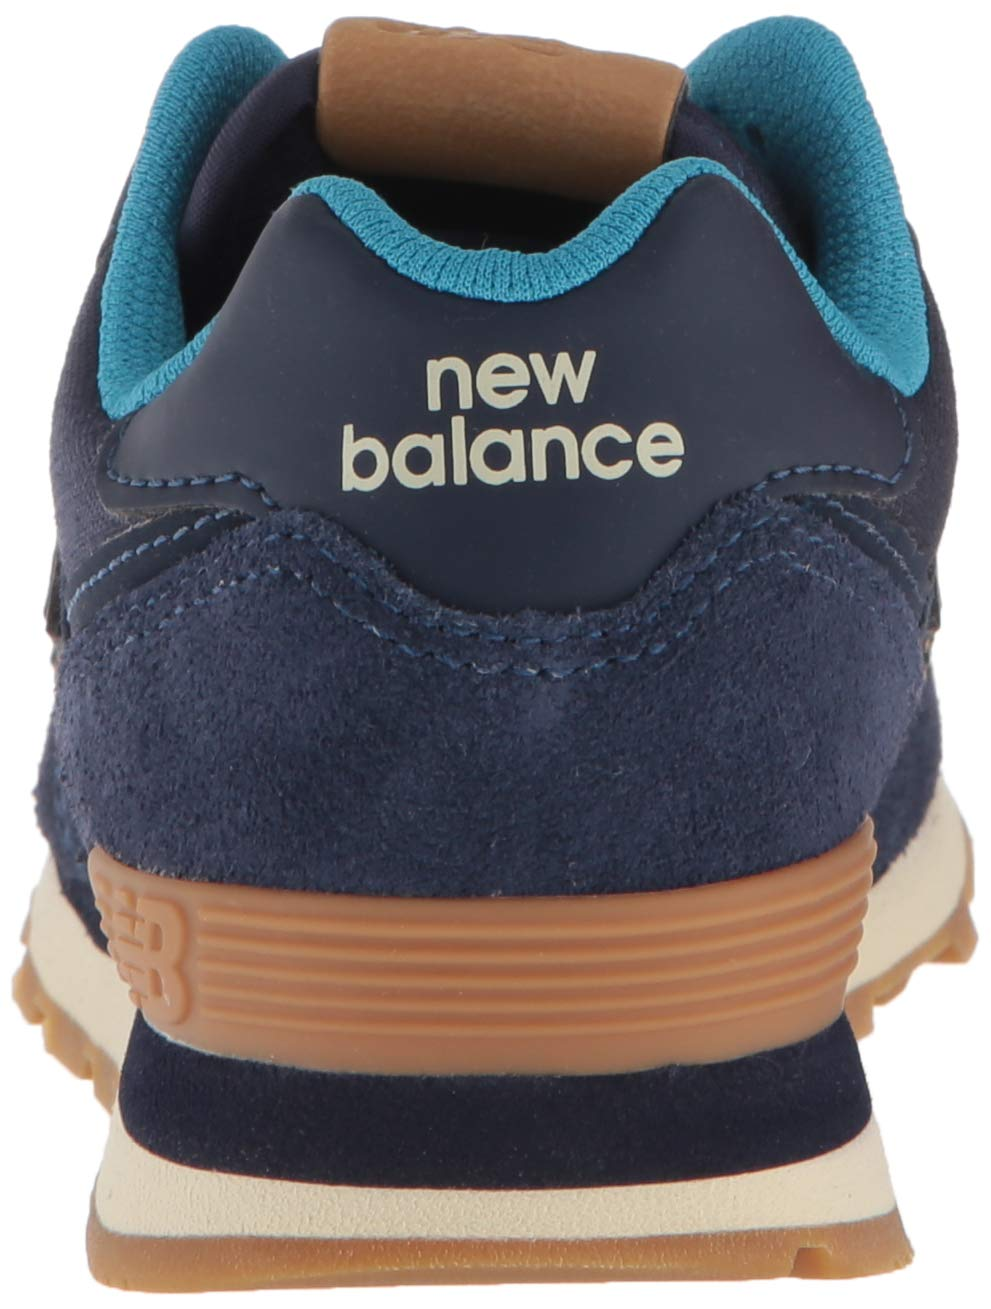 New Balance Boys' Iconic 574 Sneaker Pigment/Cadet 10 M US Toddler by New Balance (Image #2)